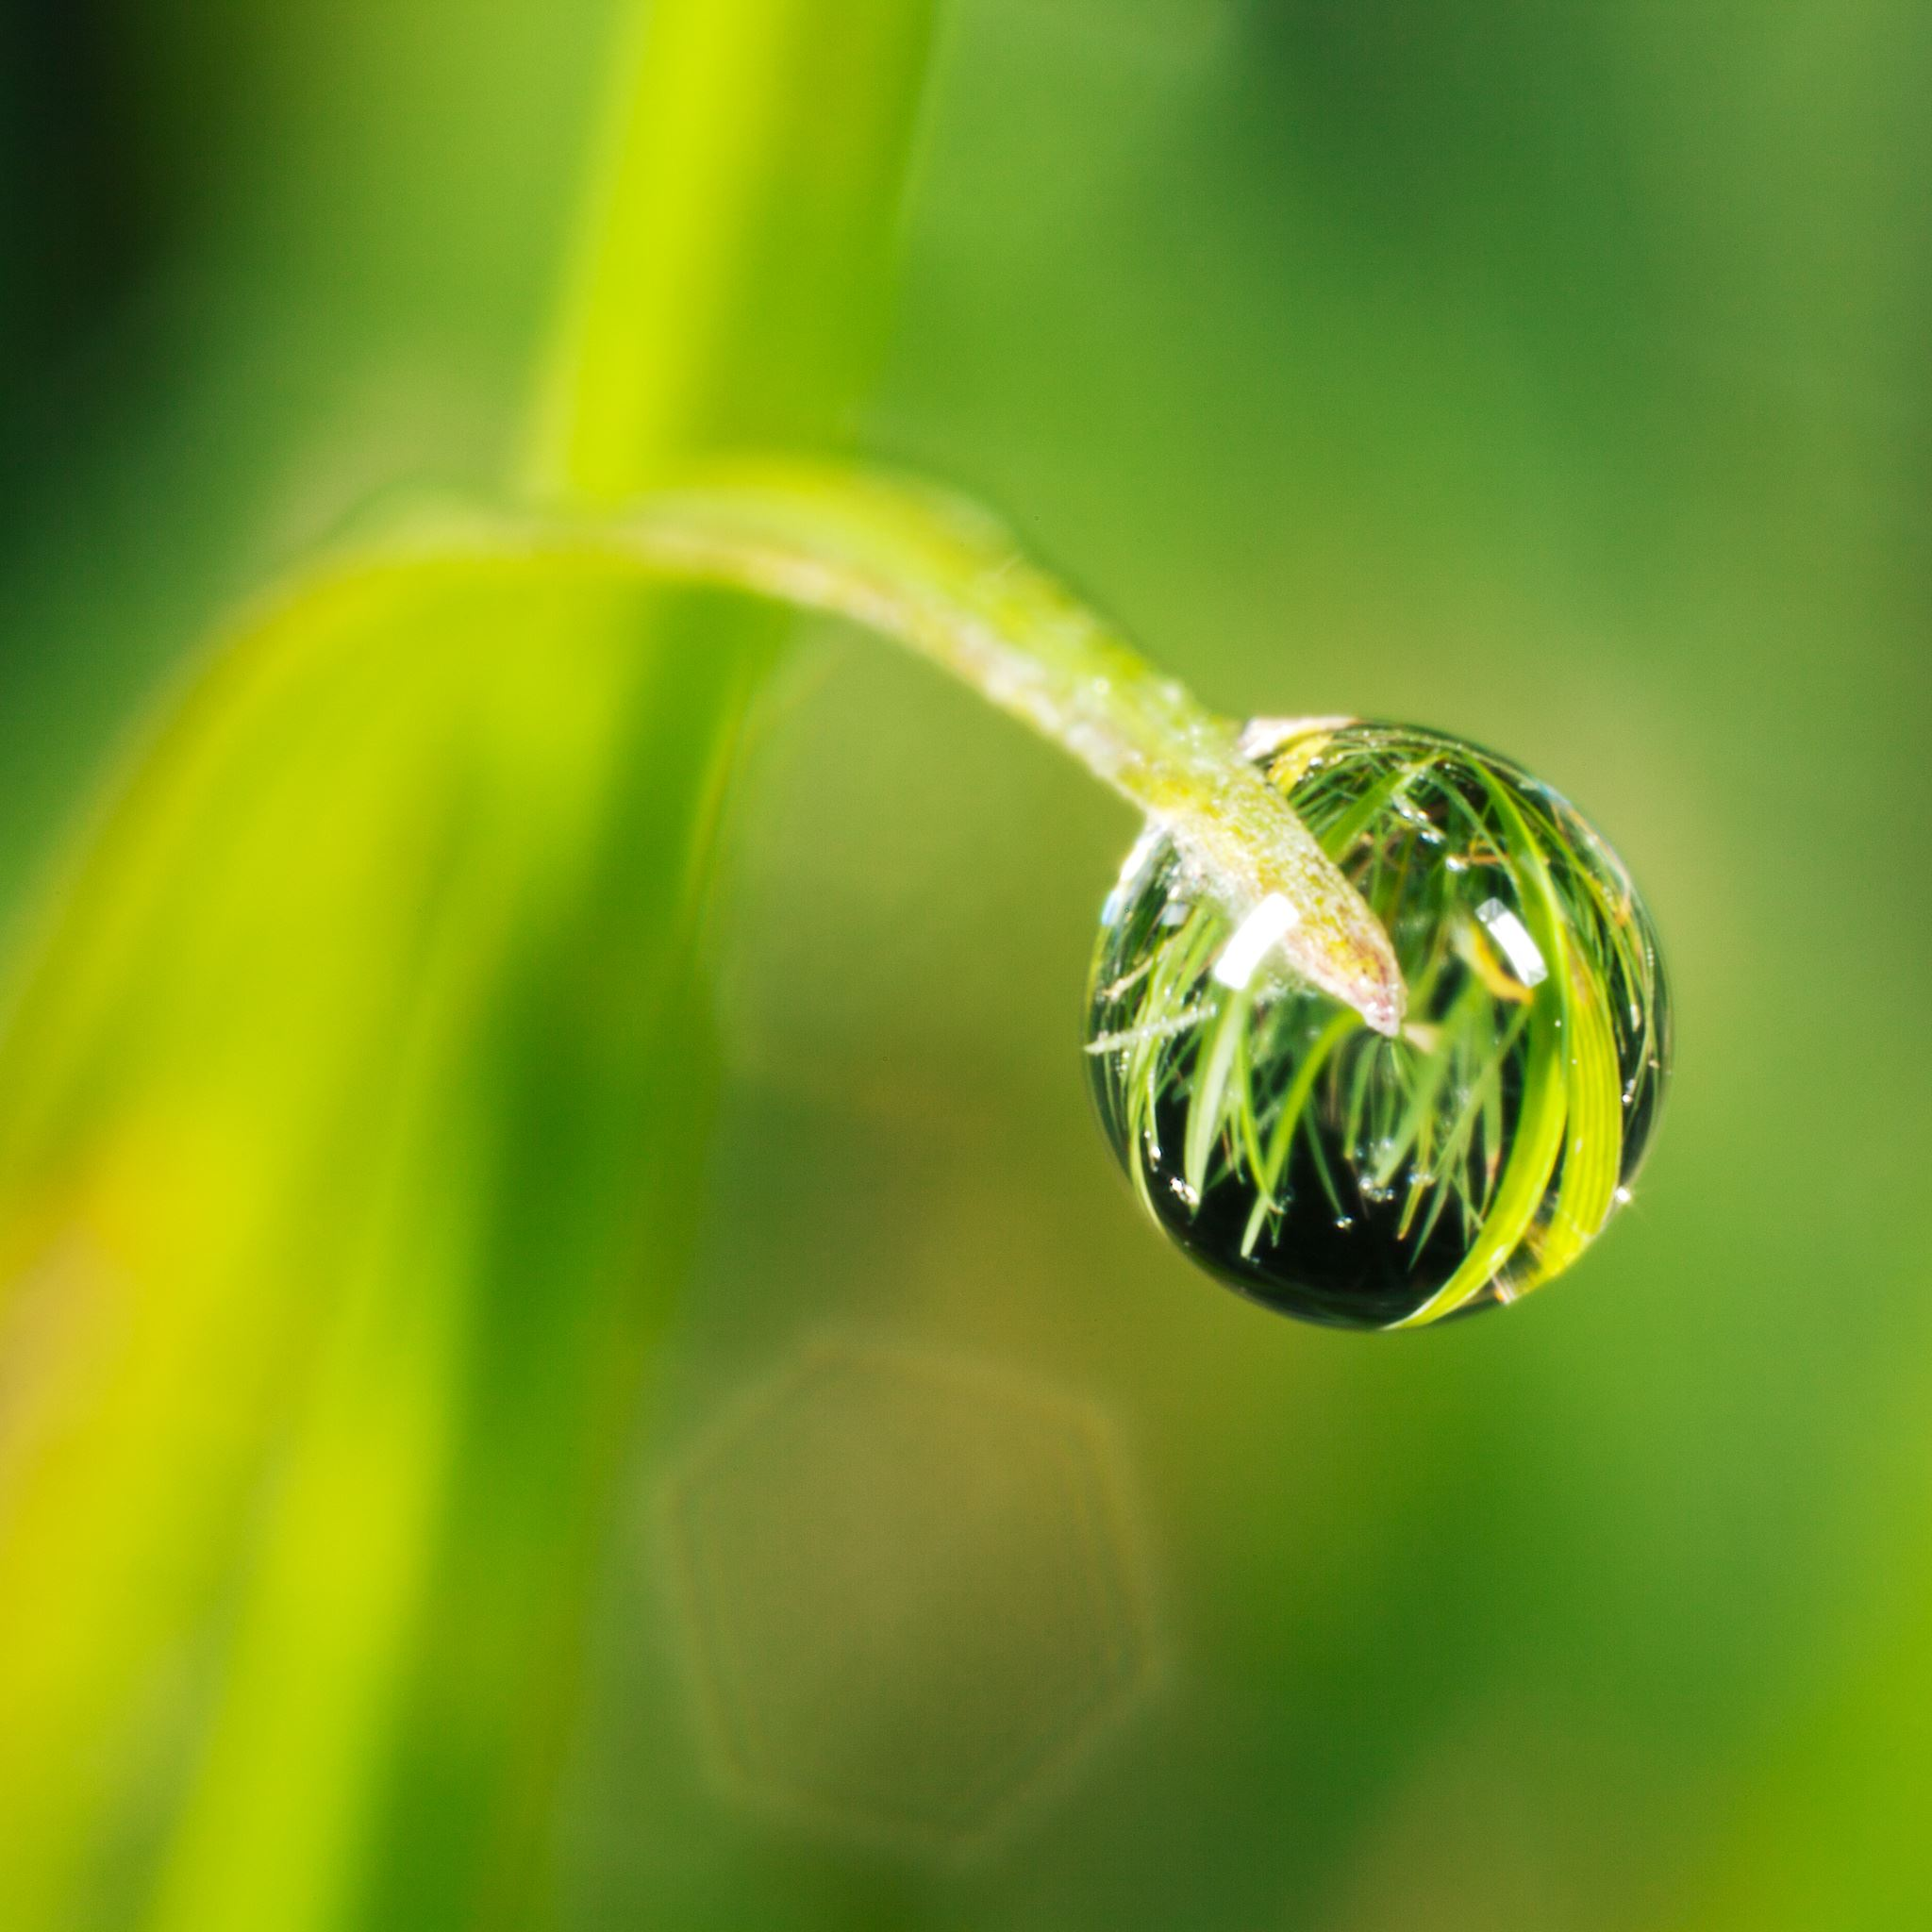 Grass Drop iPad Air wallpaper